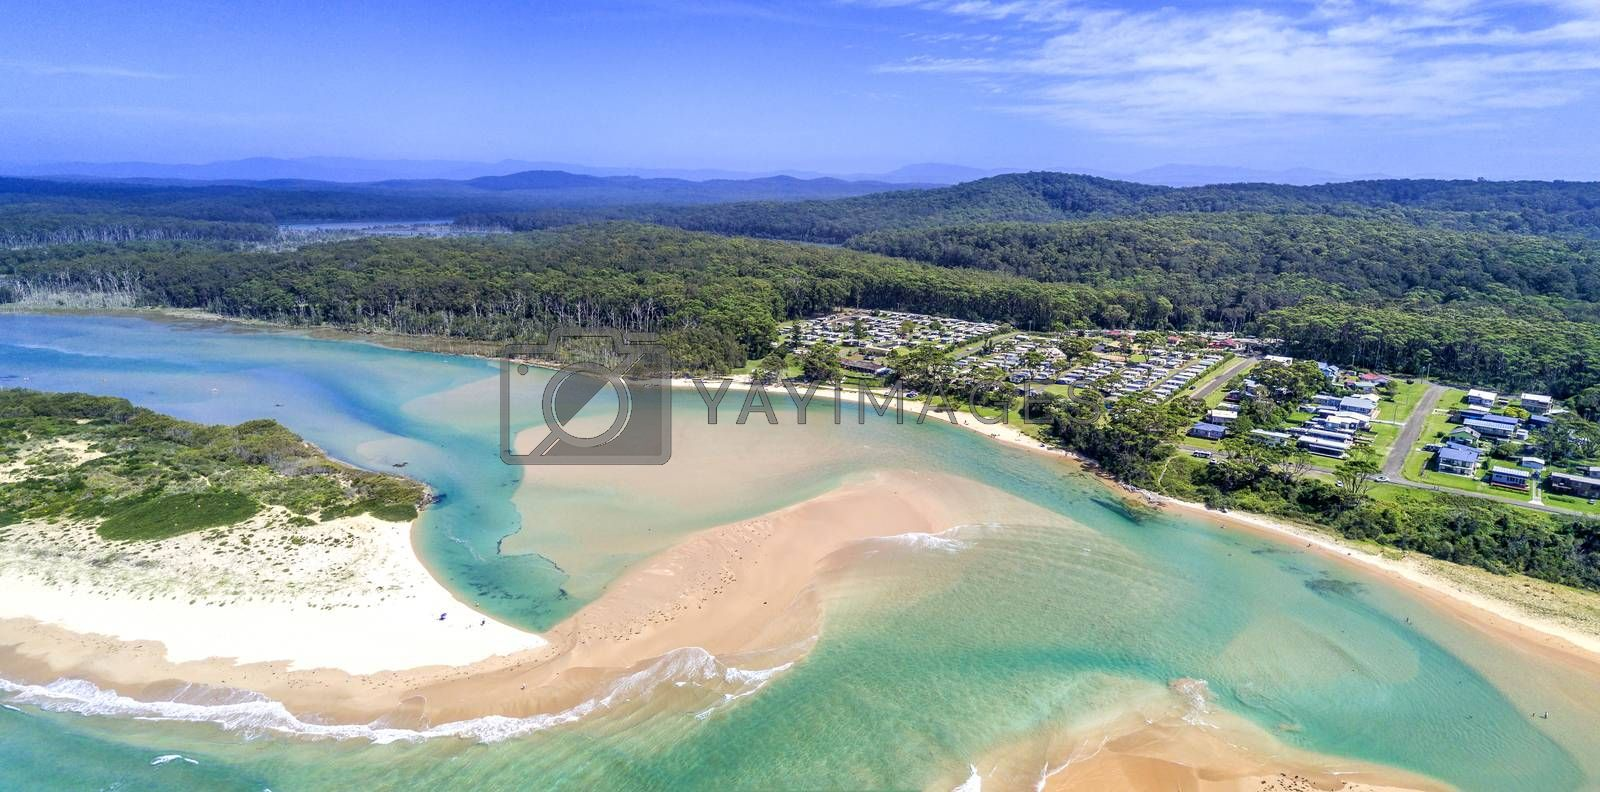 Durras Inlet separates North and South Durras townships.  In view is the popular Durras Lake North Park in Murramarang National Park, a great holiday vacation spot.